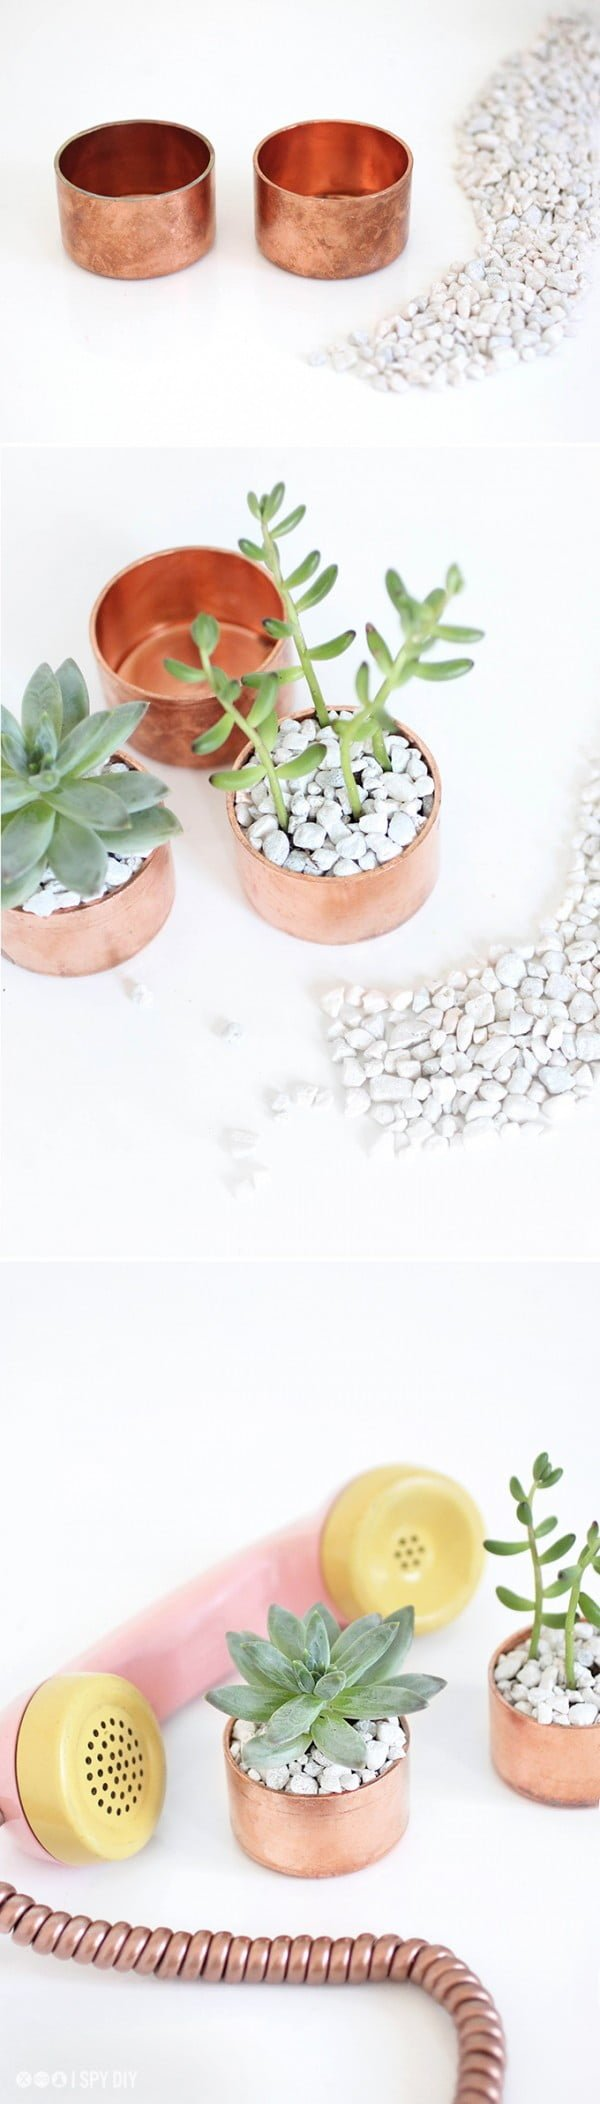 16 Trendy DIY Ideas to Decorate with Copper - Check out how to make these adorable DIY copper succulent planters